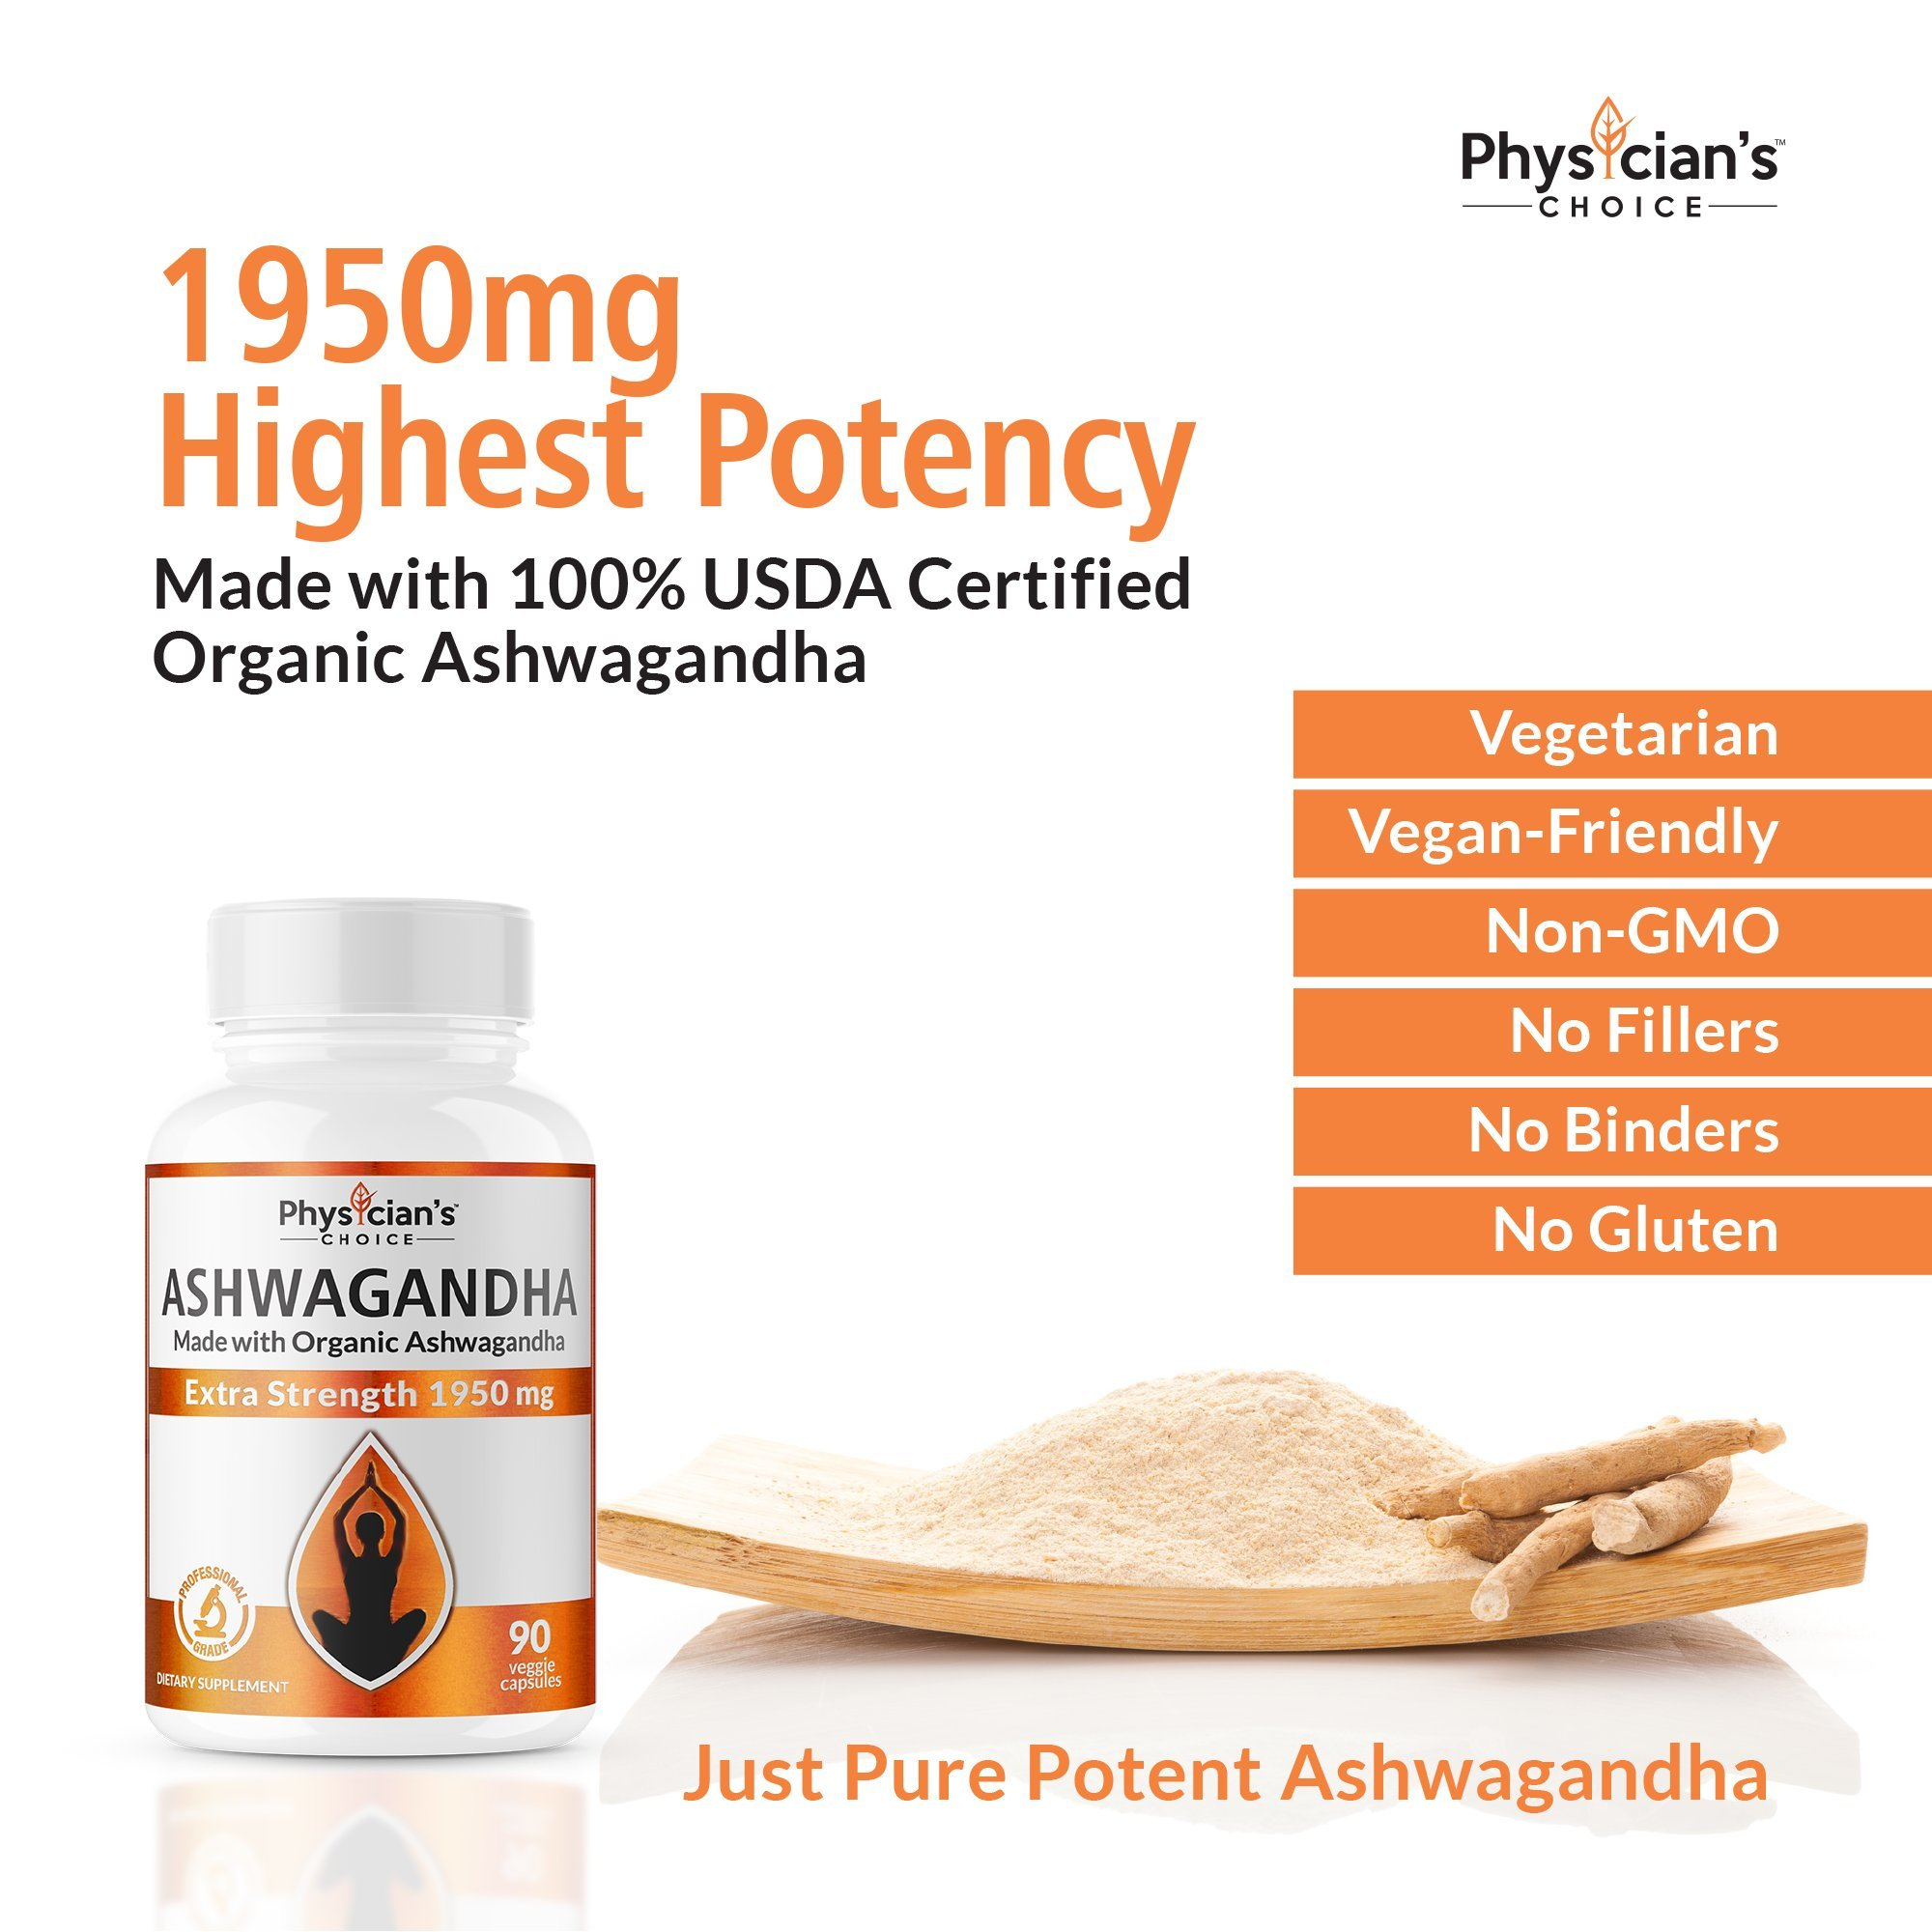 Ashwagandha 1950mg Organic Ashwagandha Root Powder Extract of Black Pepper Anxiety Relief, Thyroid Support, Cortisol & Adrenal Support, Anti Anxiety & Adrenal Fatigue Supplements 90 Veggie Capsules by PhysiciansChoice (Image #3)